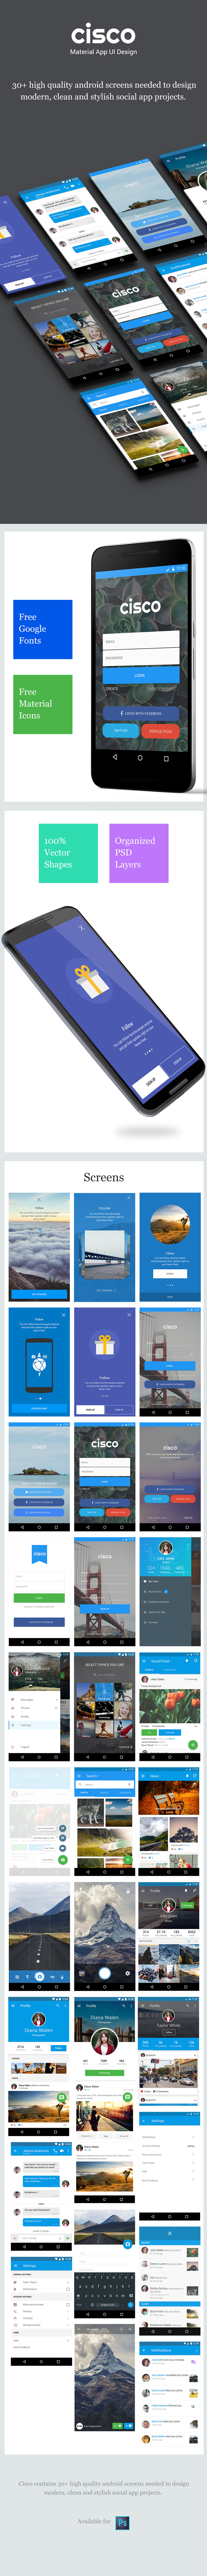 cisco app UI ux material android feed mobile phone social network profile